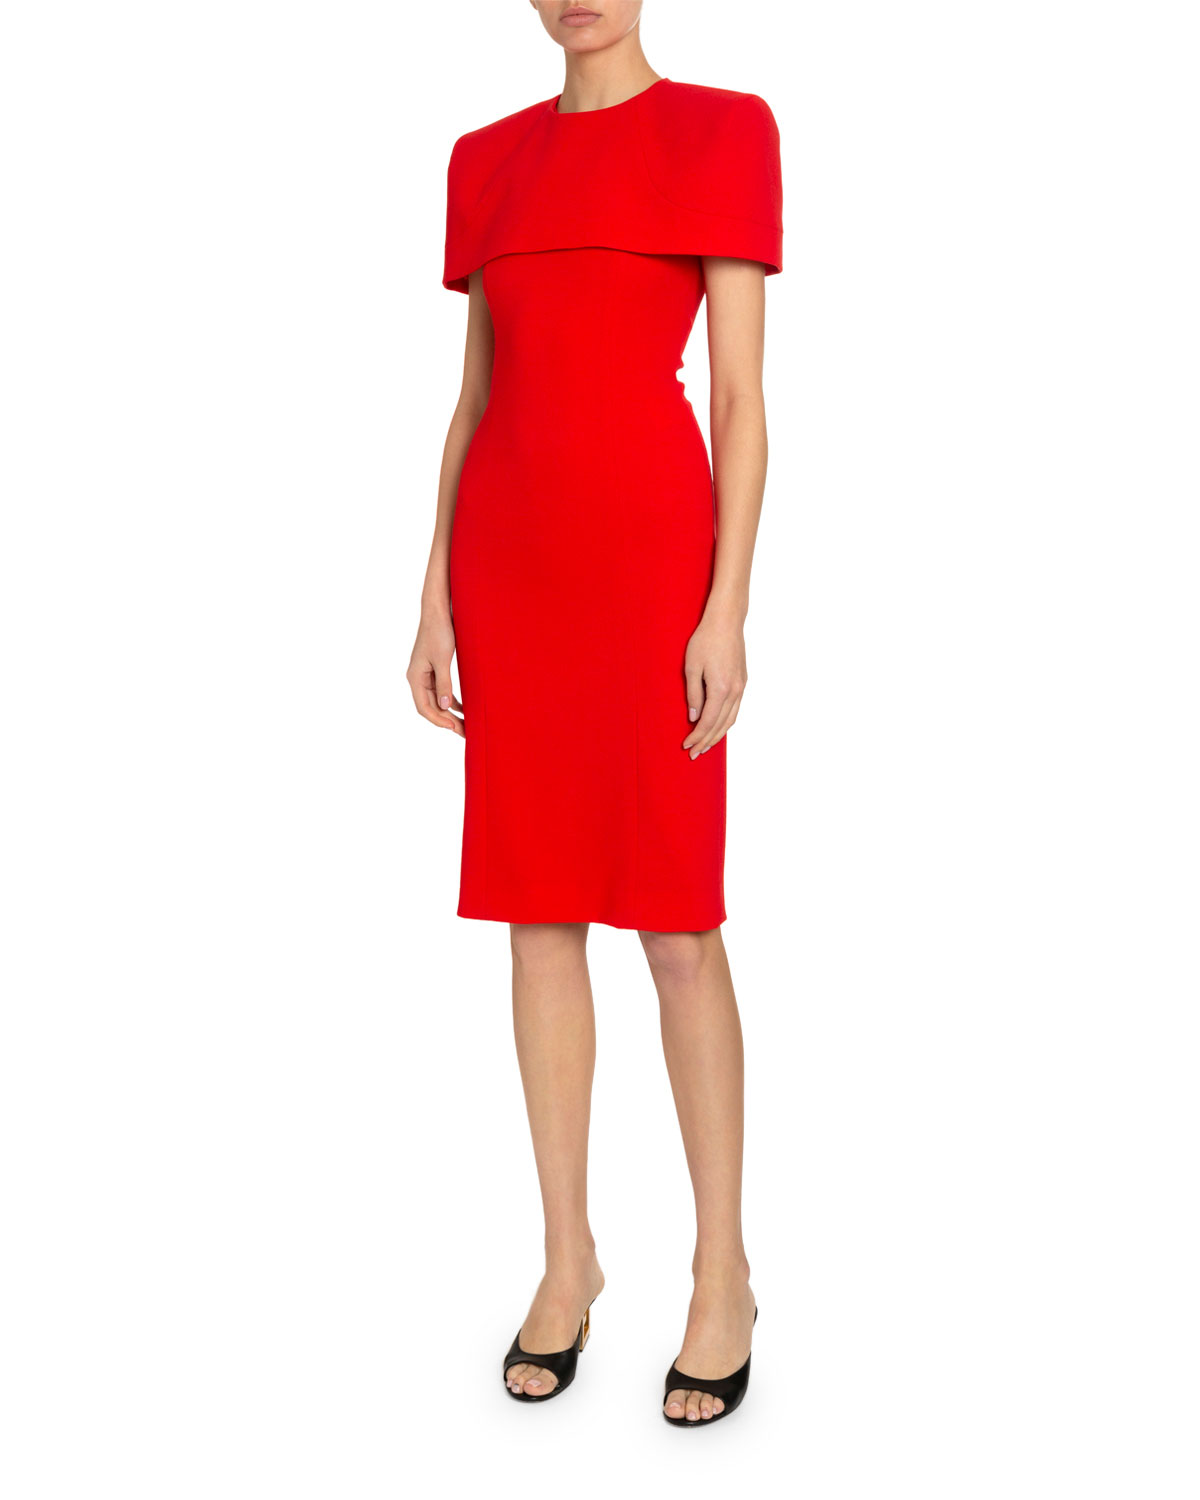 Givenchy Capes CREPE WOOL DRESS WITH REMOVABLE CAPELET